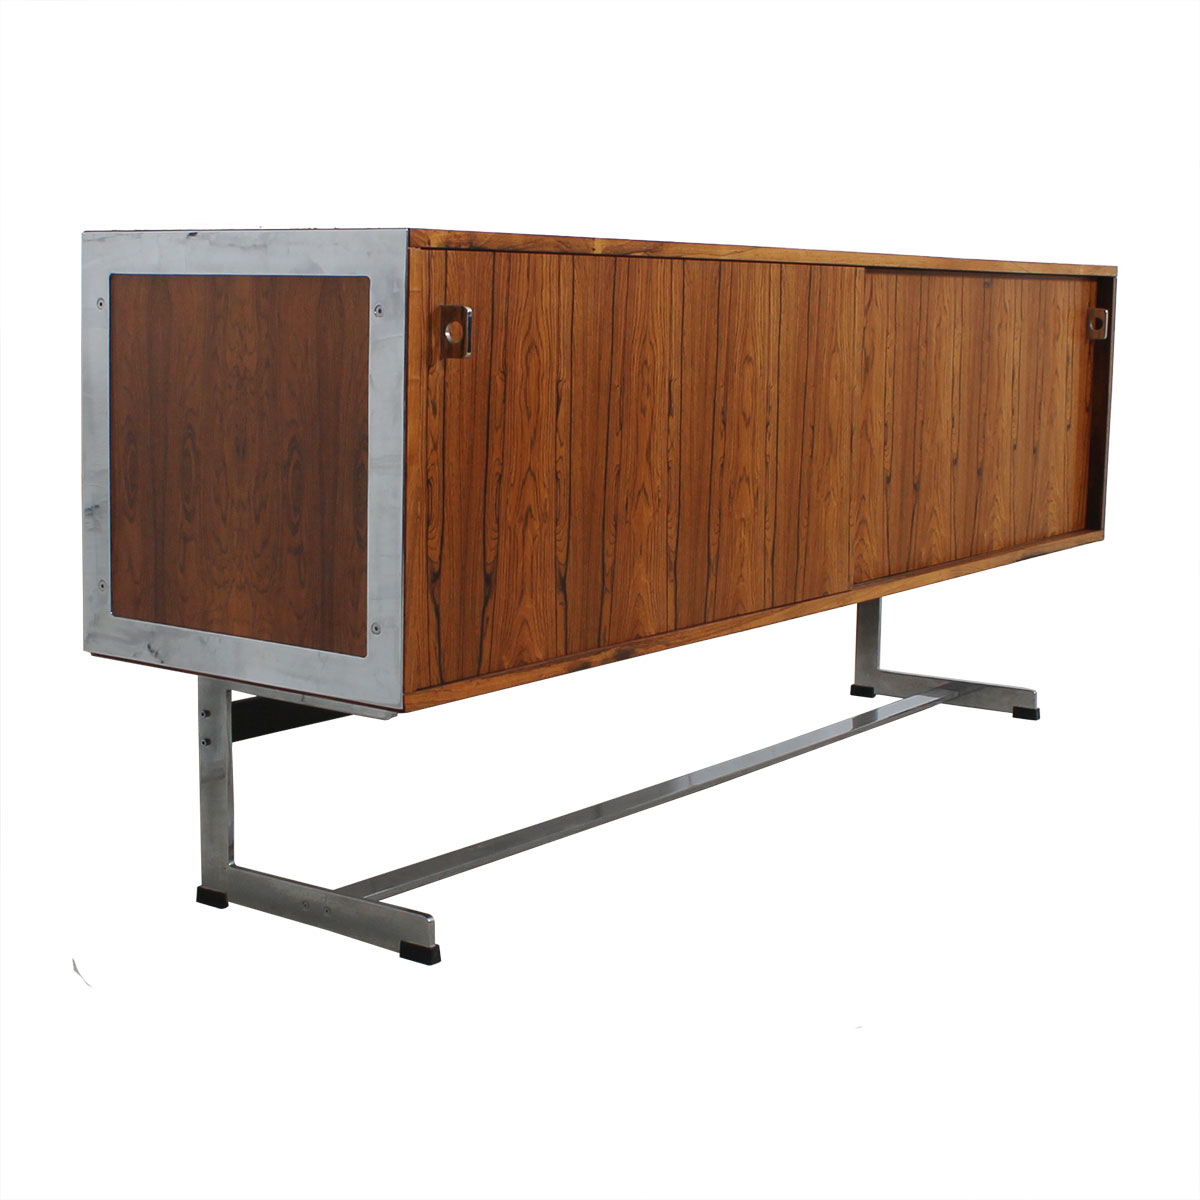 Merrow Associates Rosewood & Chrome Credenza / Sideboard